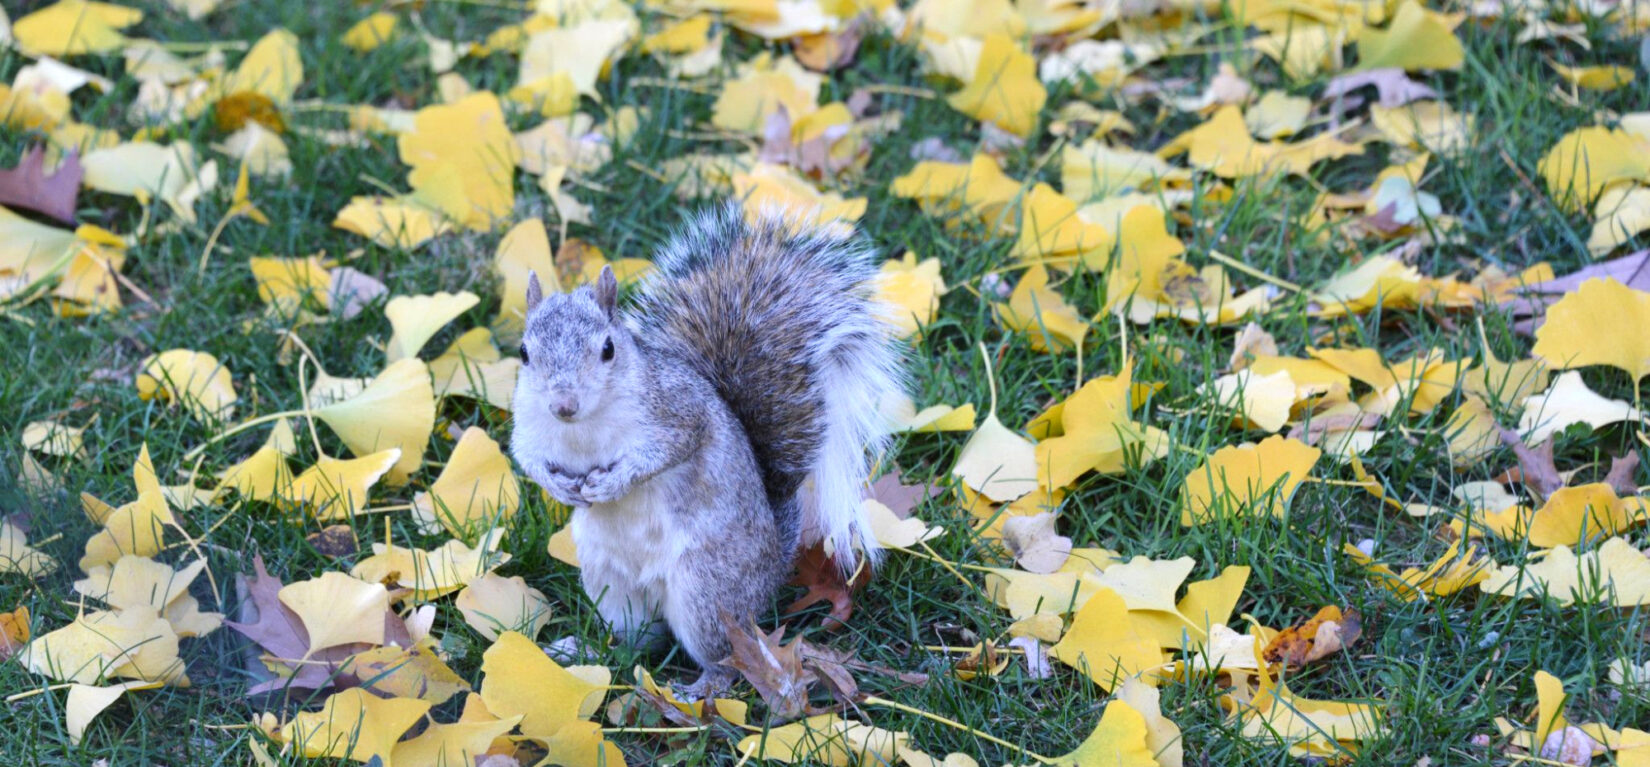 A squirrel poses for a photo among fallen leaves while gathering nuts.